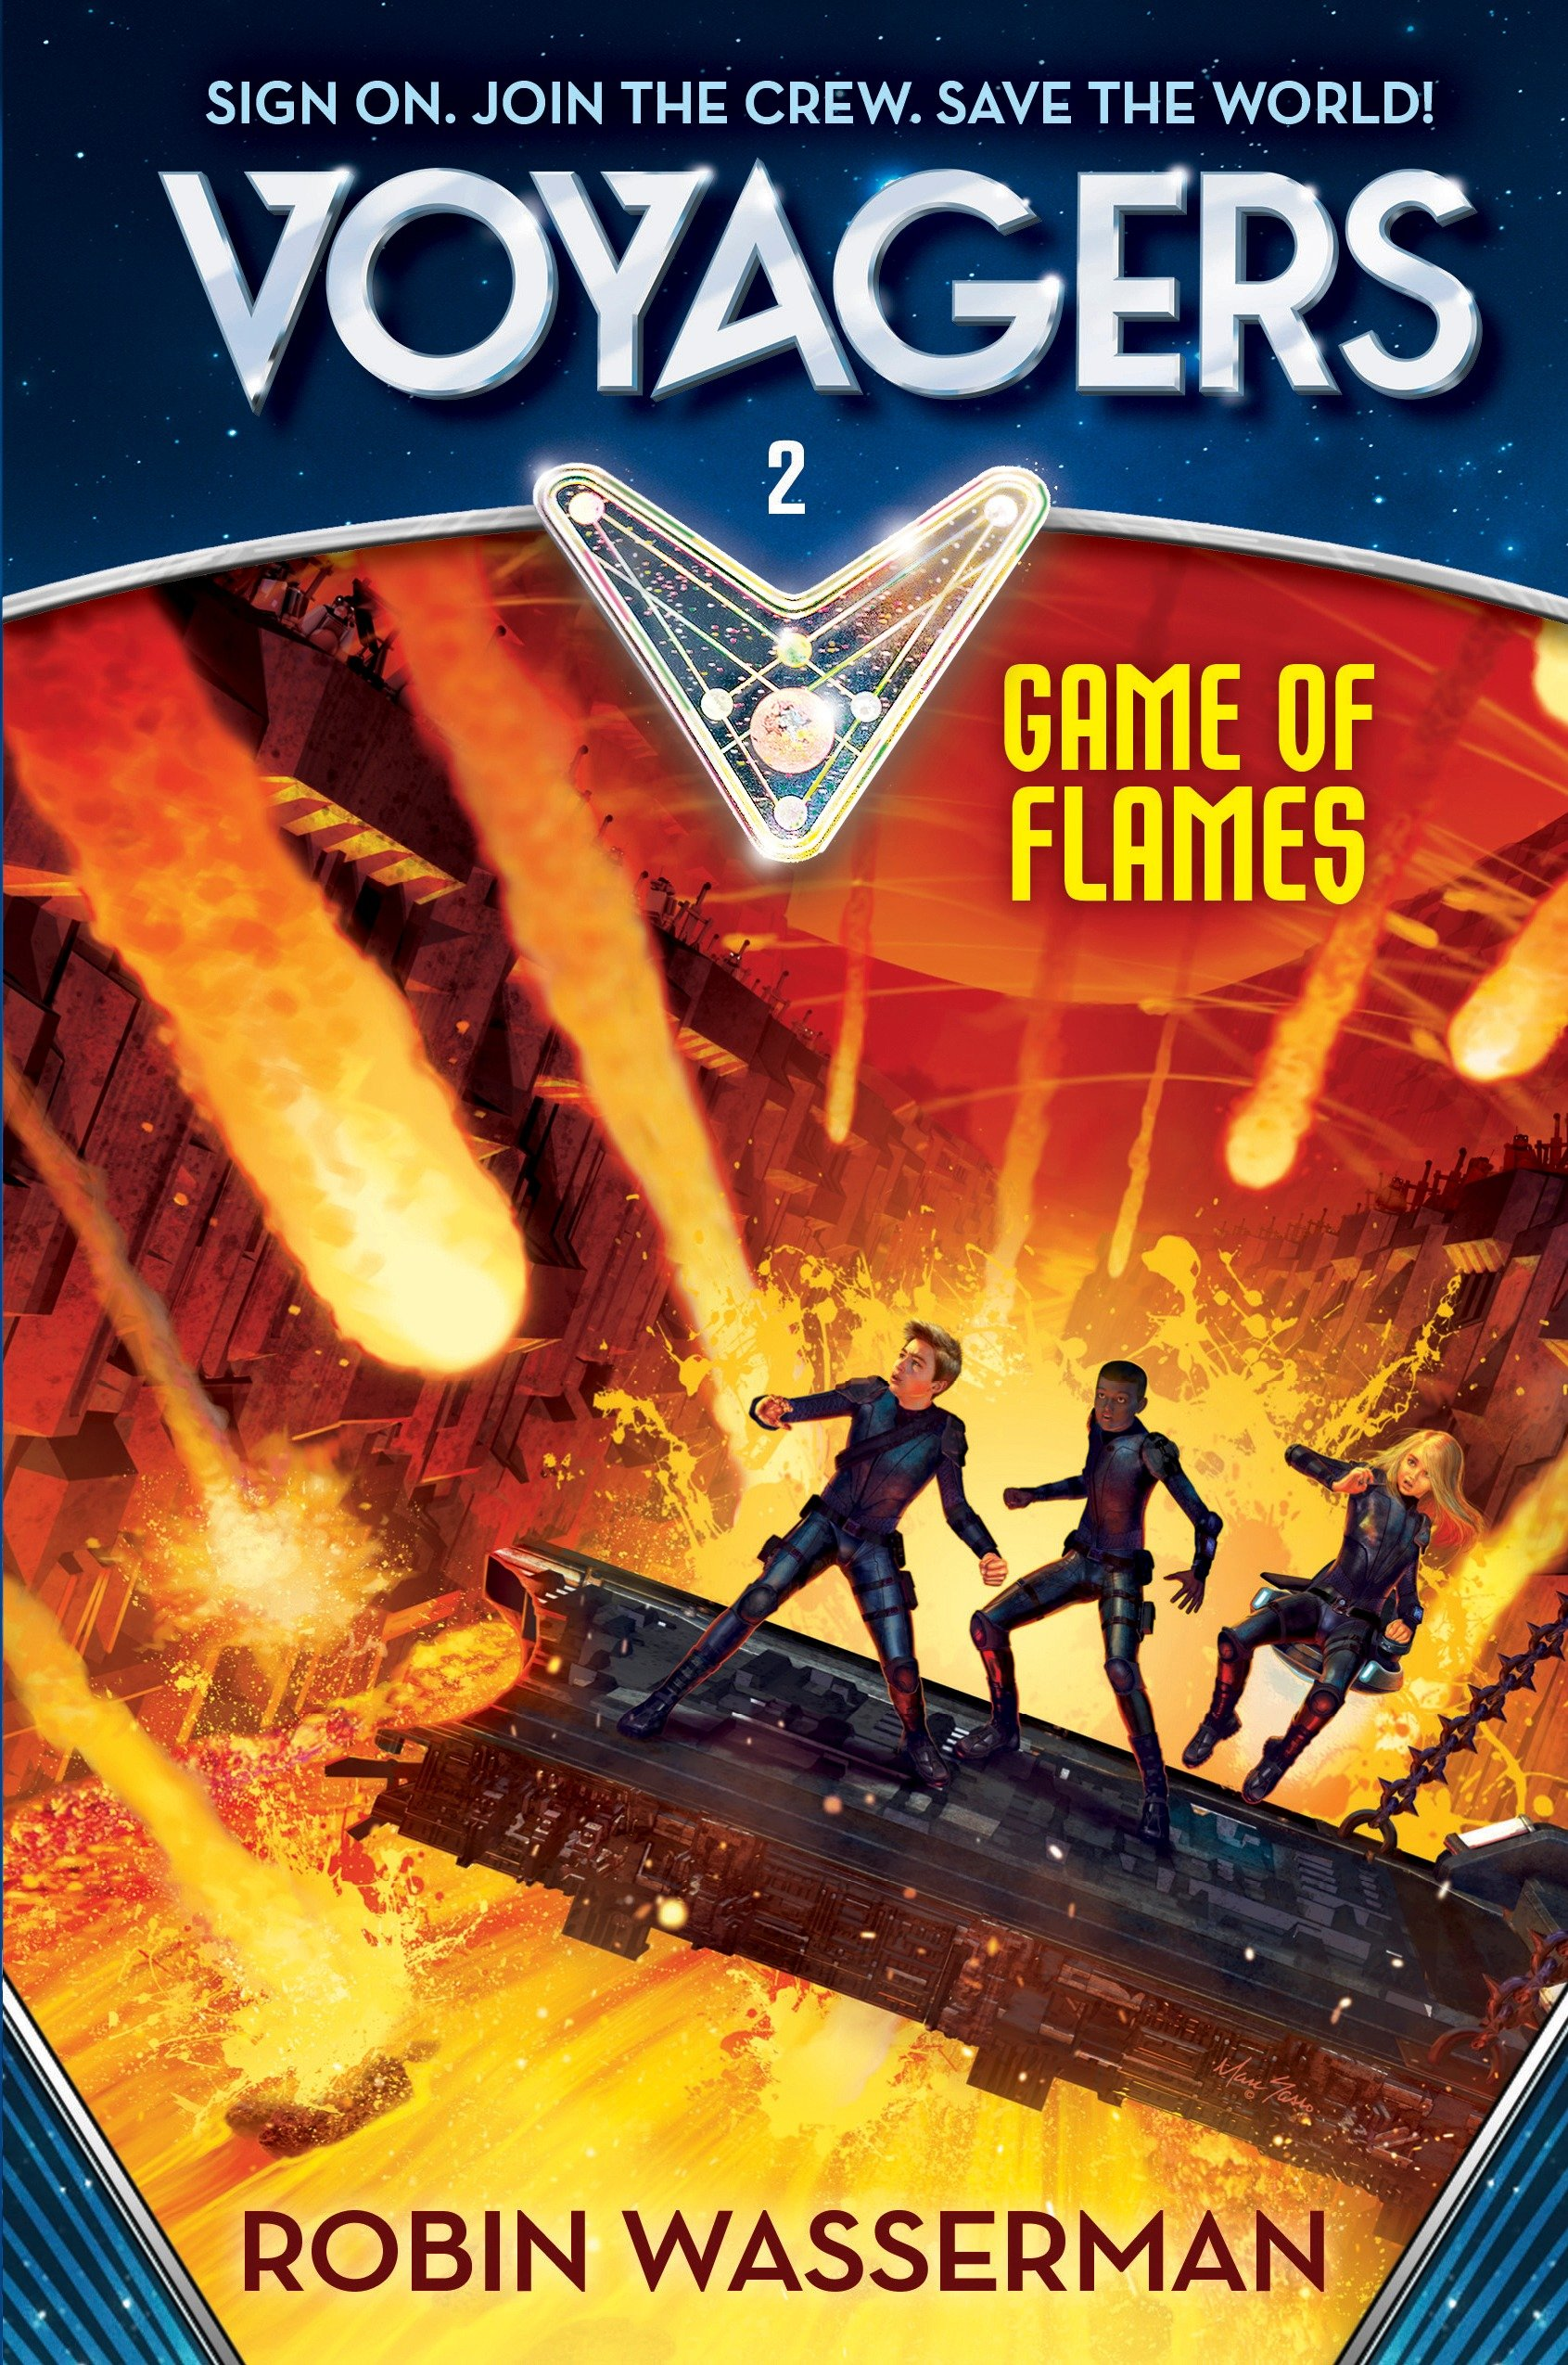 Game of flames cover image